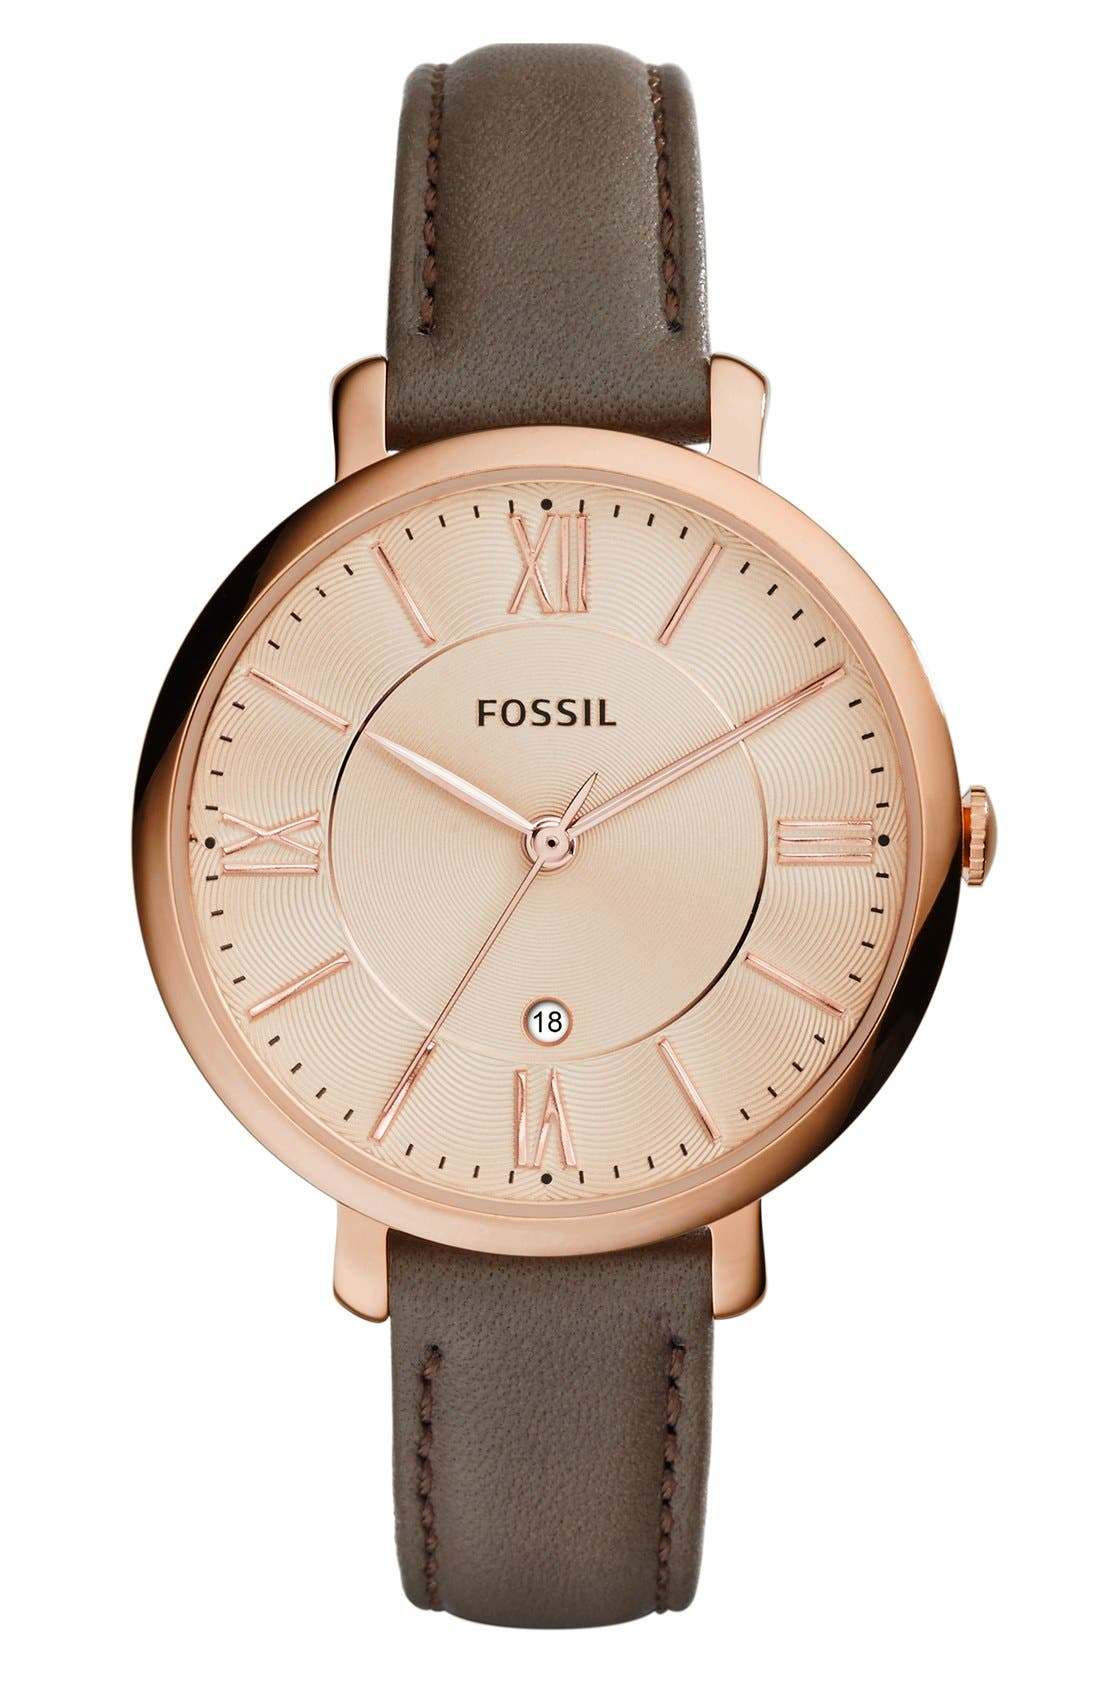 FOSSIL, 'Jacqueline' Round Leather Strap Watch, 36mm, Main thumbnail 1, color, IRON/ ROSE GOLD